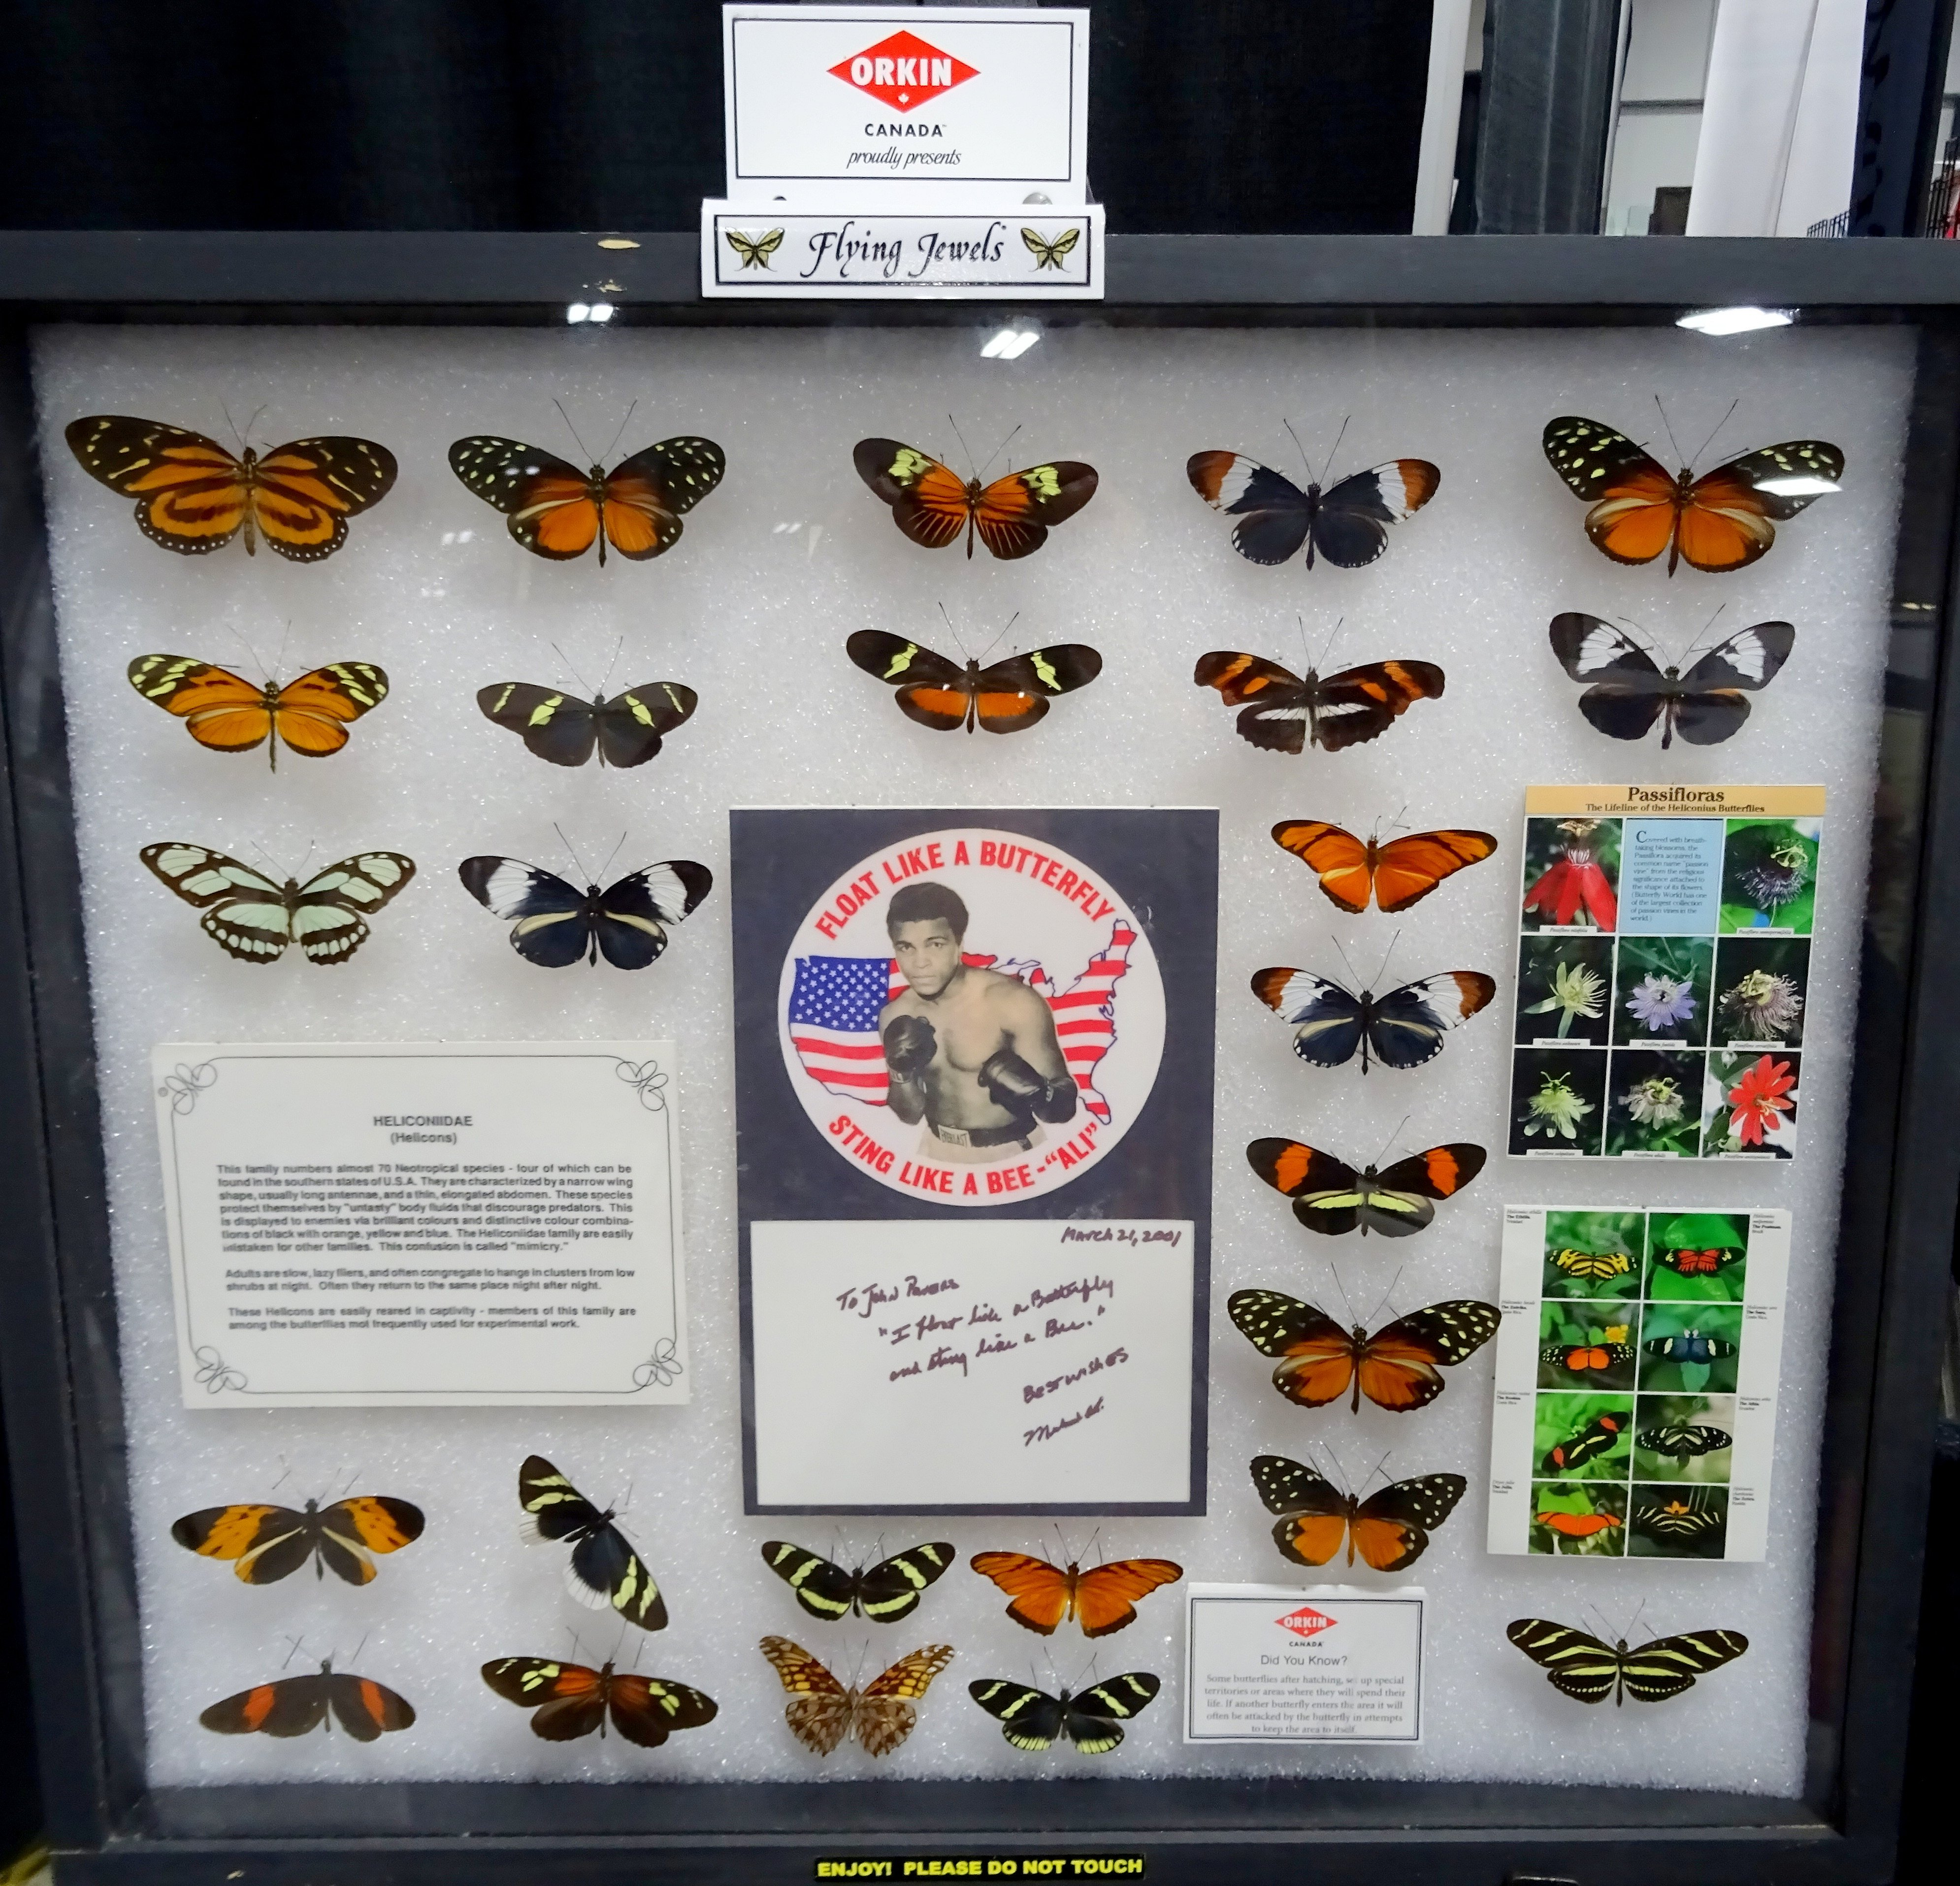 MuhammadAli quote at Butterfly Display by Orkin Canada, 15-17 April 2016